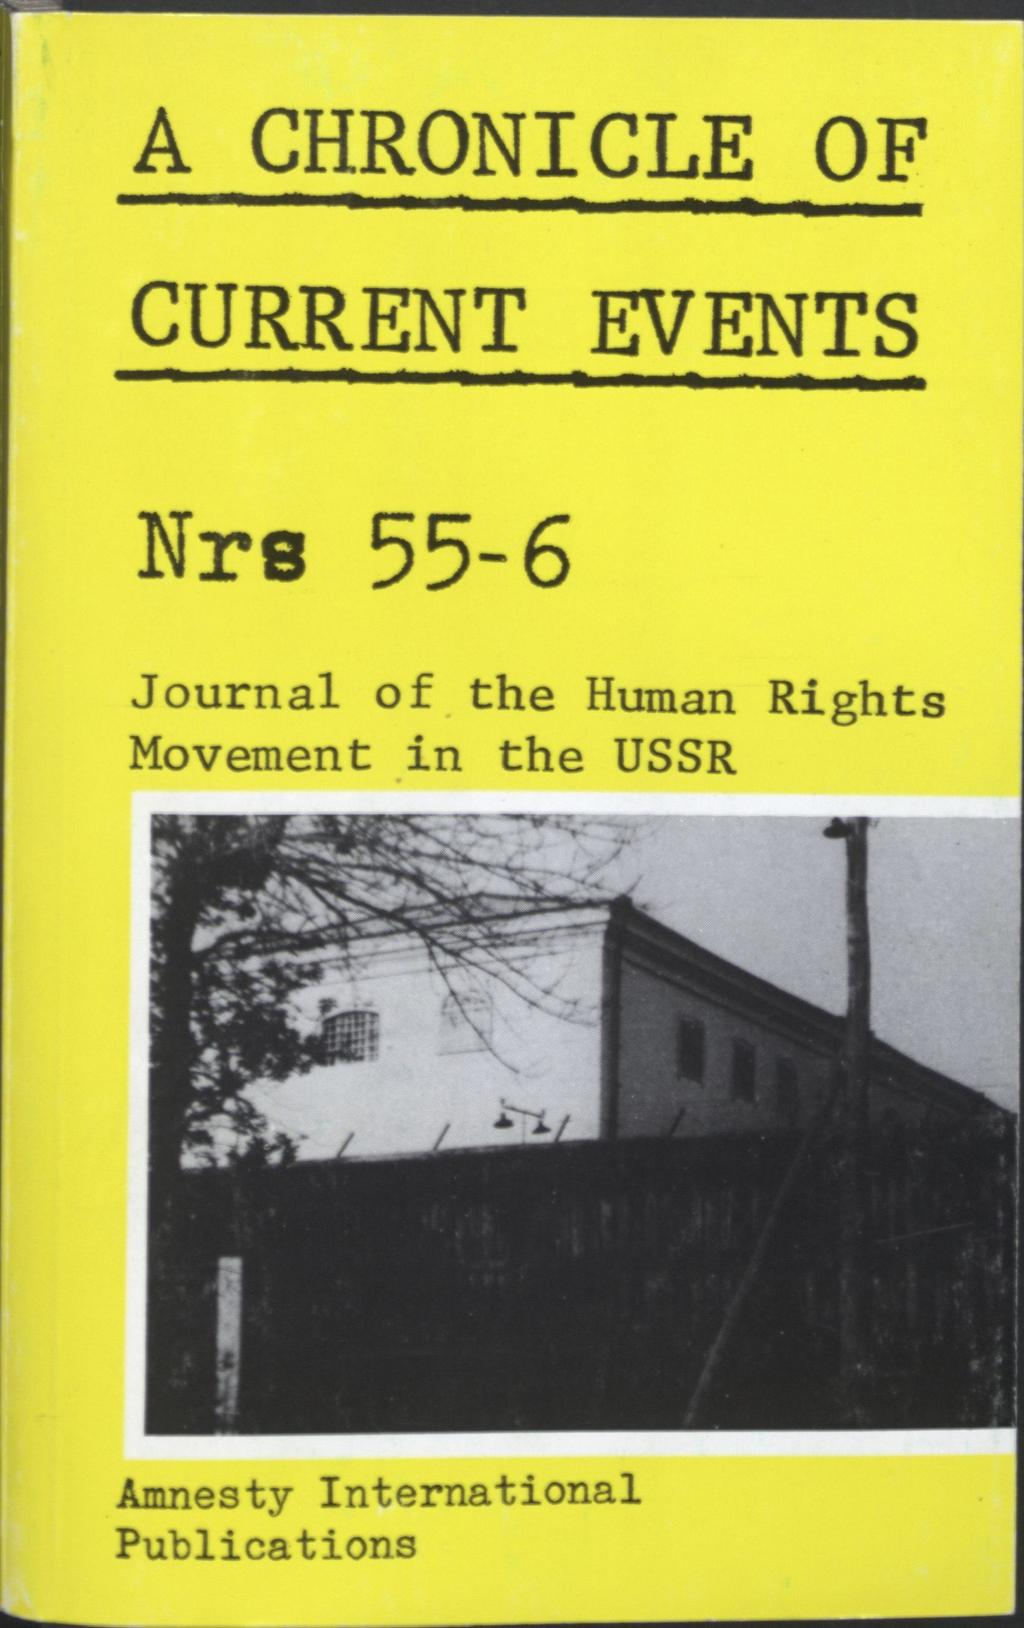 A CHRONICLE OF CURRENT EVENTS Nre 55-6 Journal of the Human